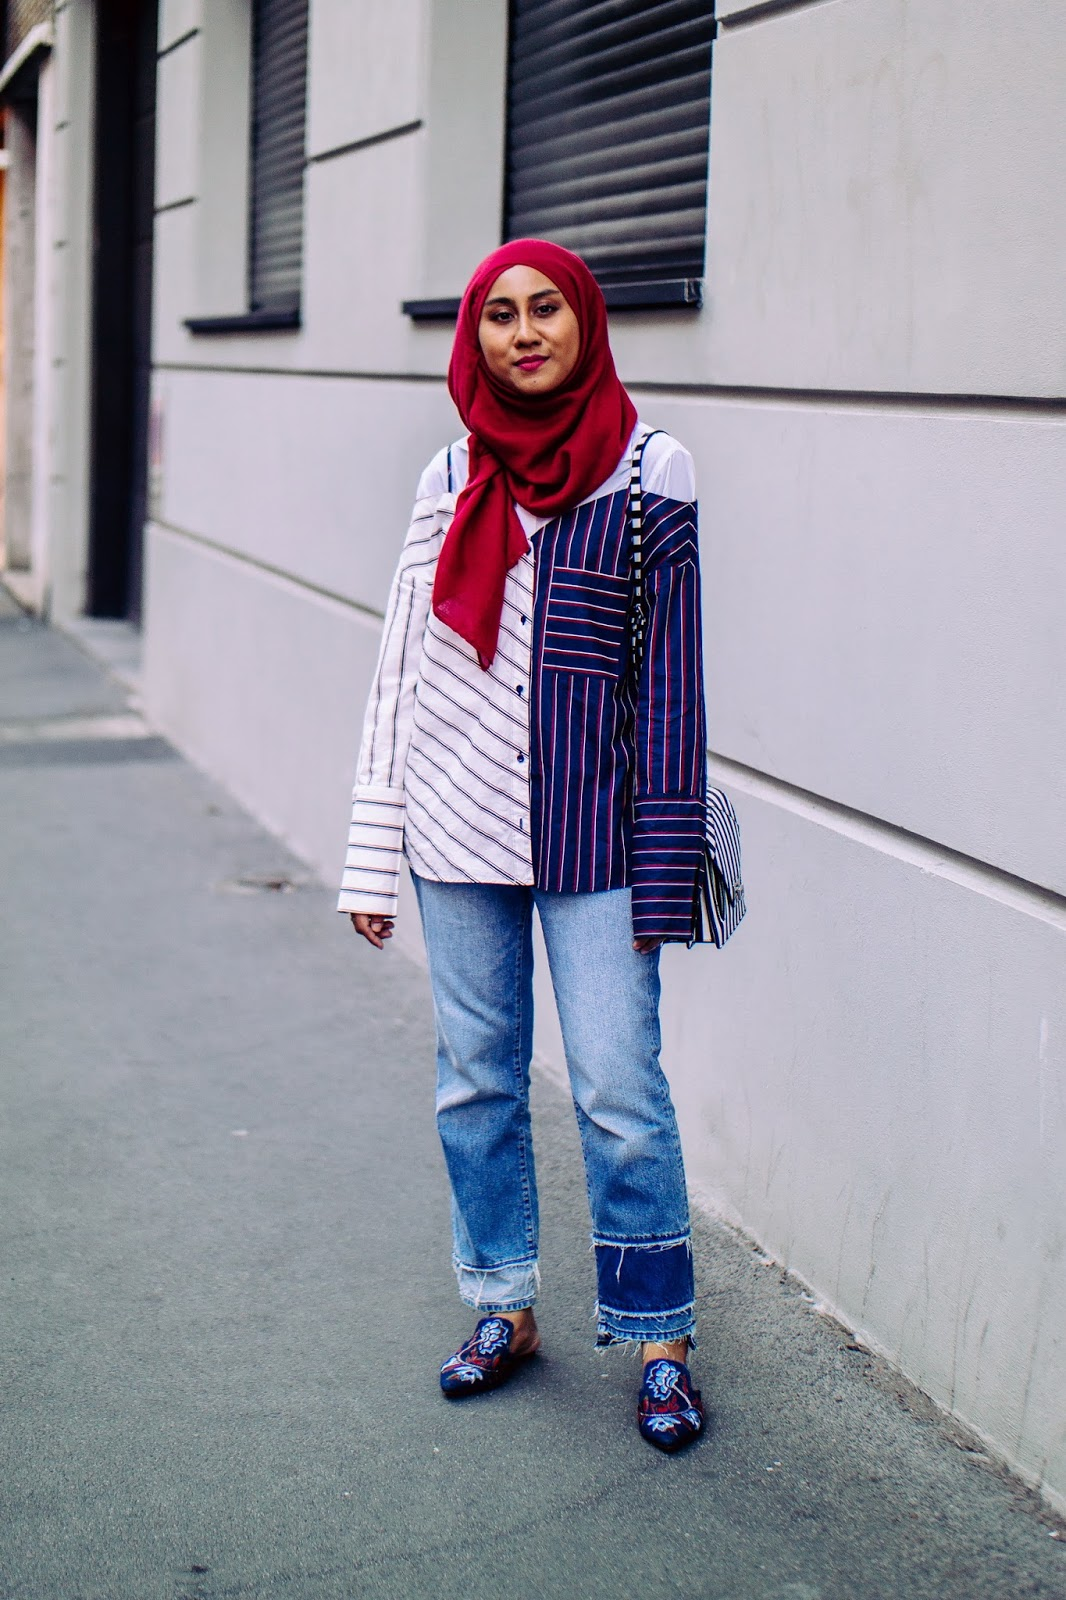 How To Make an Off-the-Shoulder Top Hijab-appropriate